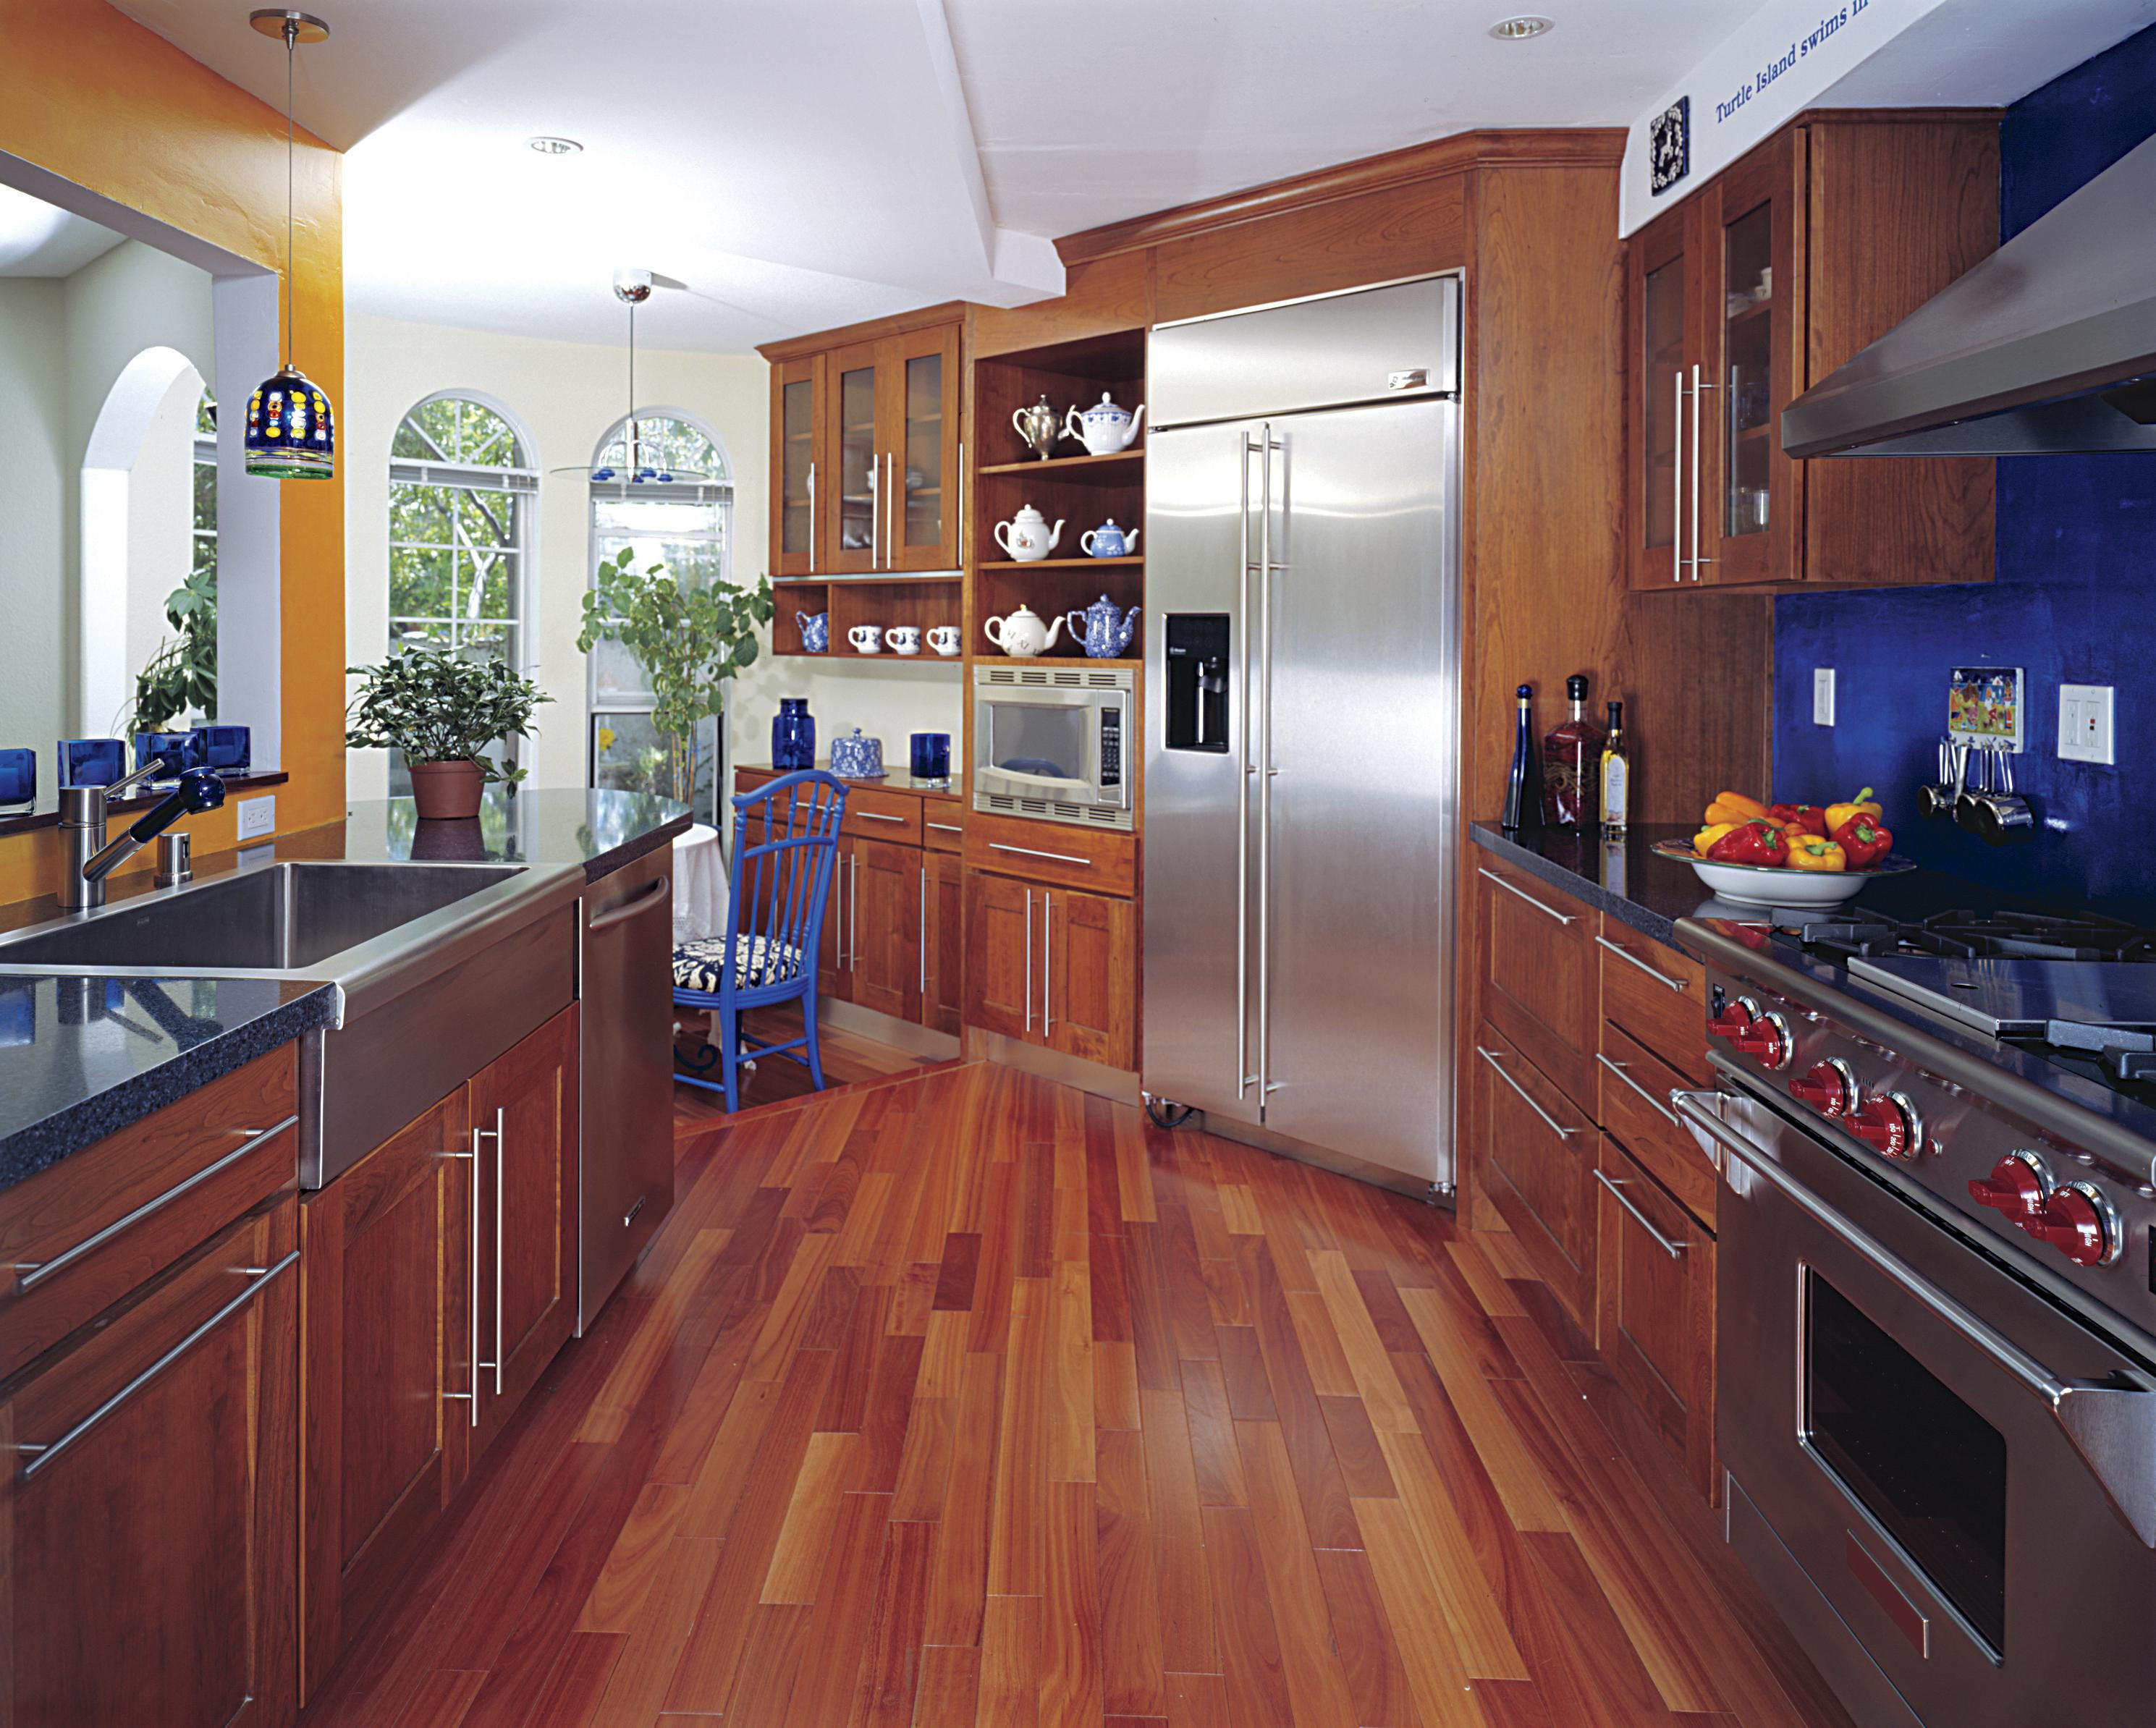 installing engineered hardwood flooring nail down of hardwood floor in a kitchen is this allowed with regard to 186828472 56a49f3a5f9b58b7d0d7e142